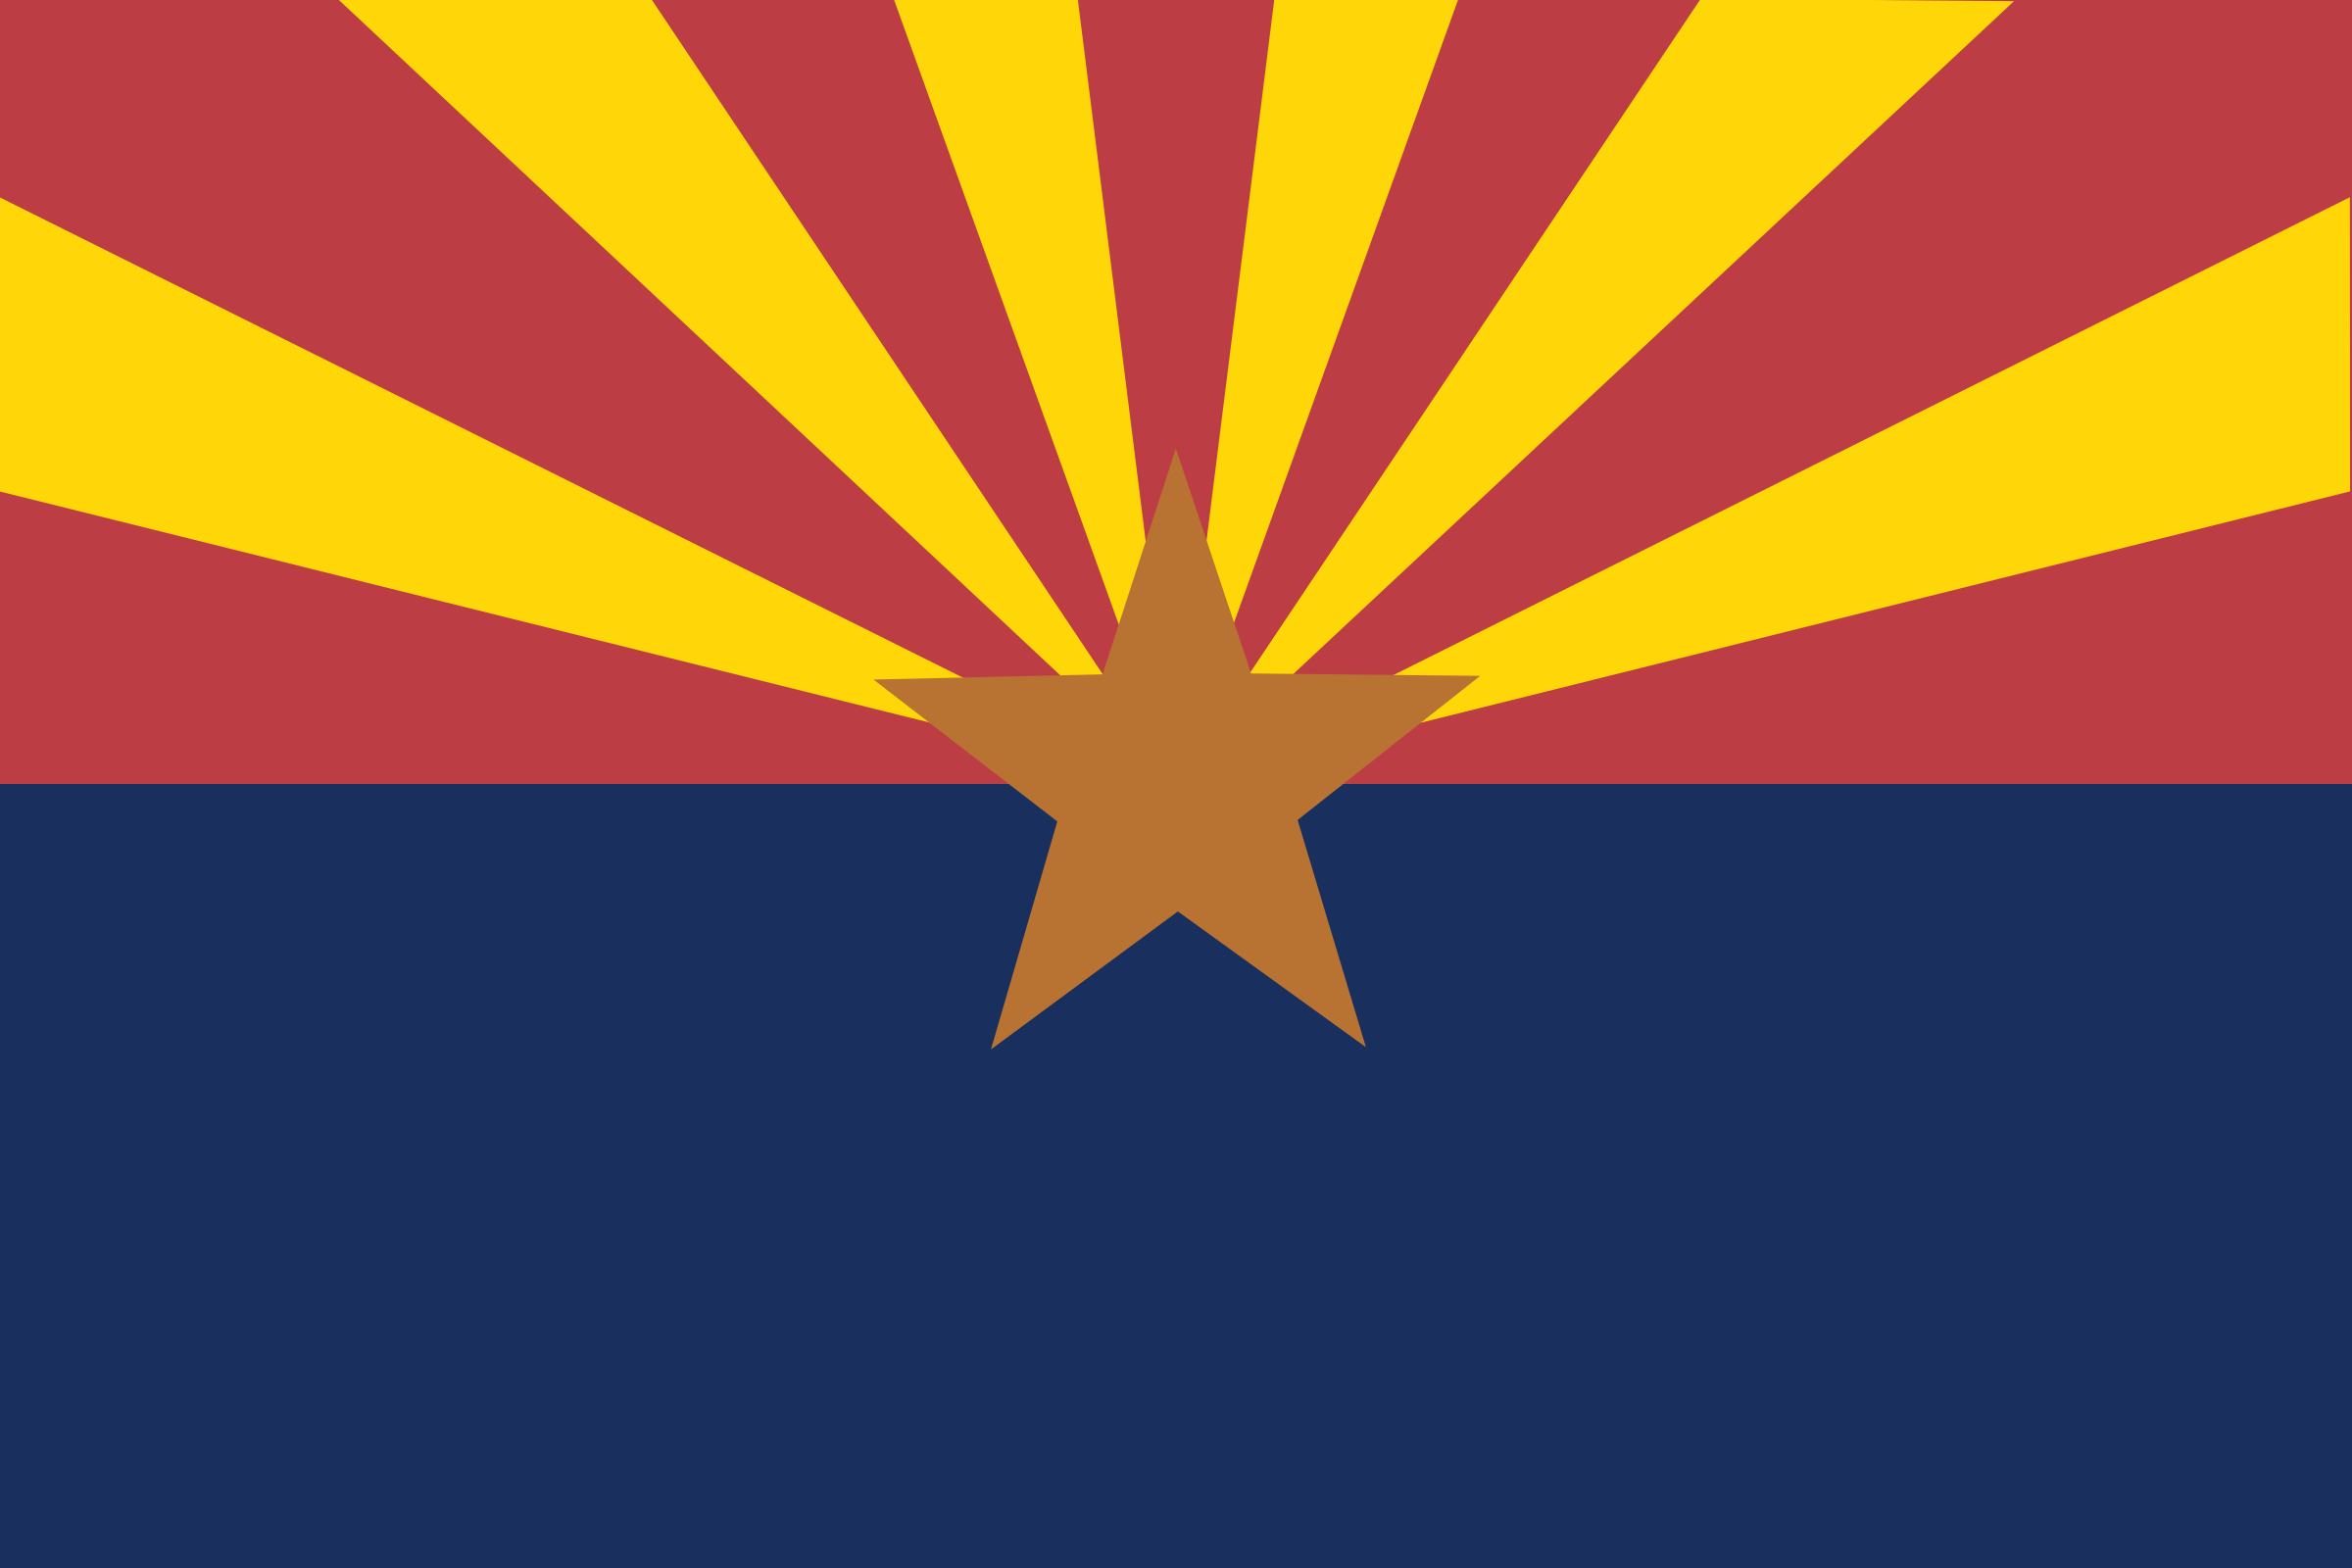 Arizona state flag by Anonymous